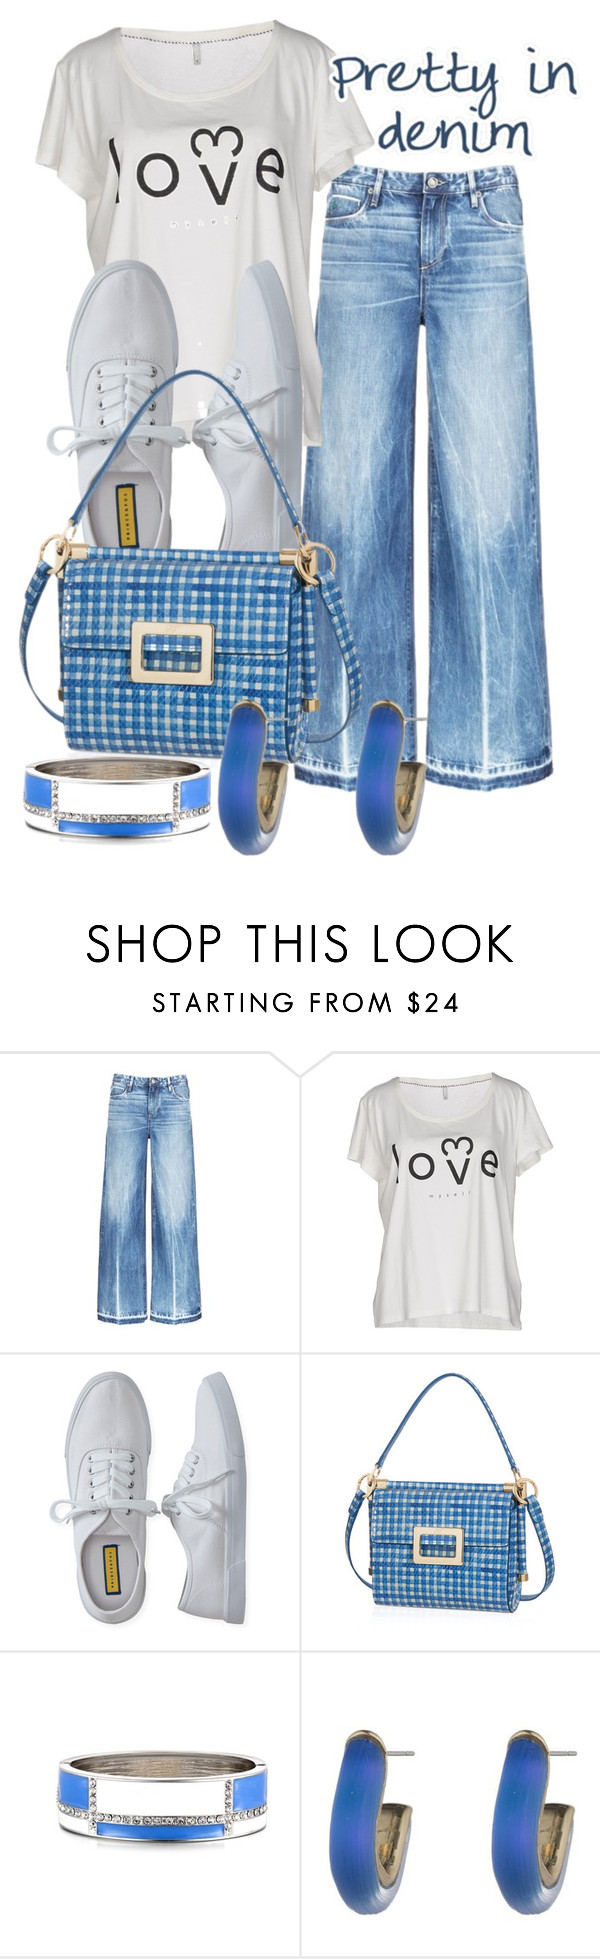 """Untitled #713"" by saritanwa ❤ liked on Polyvore featuring Tortoise, ONLY, Aéropostale, Roger Vivier and Alexis Bittar"